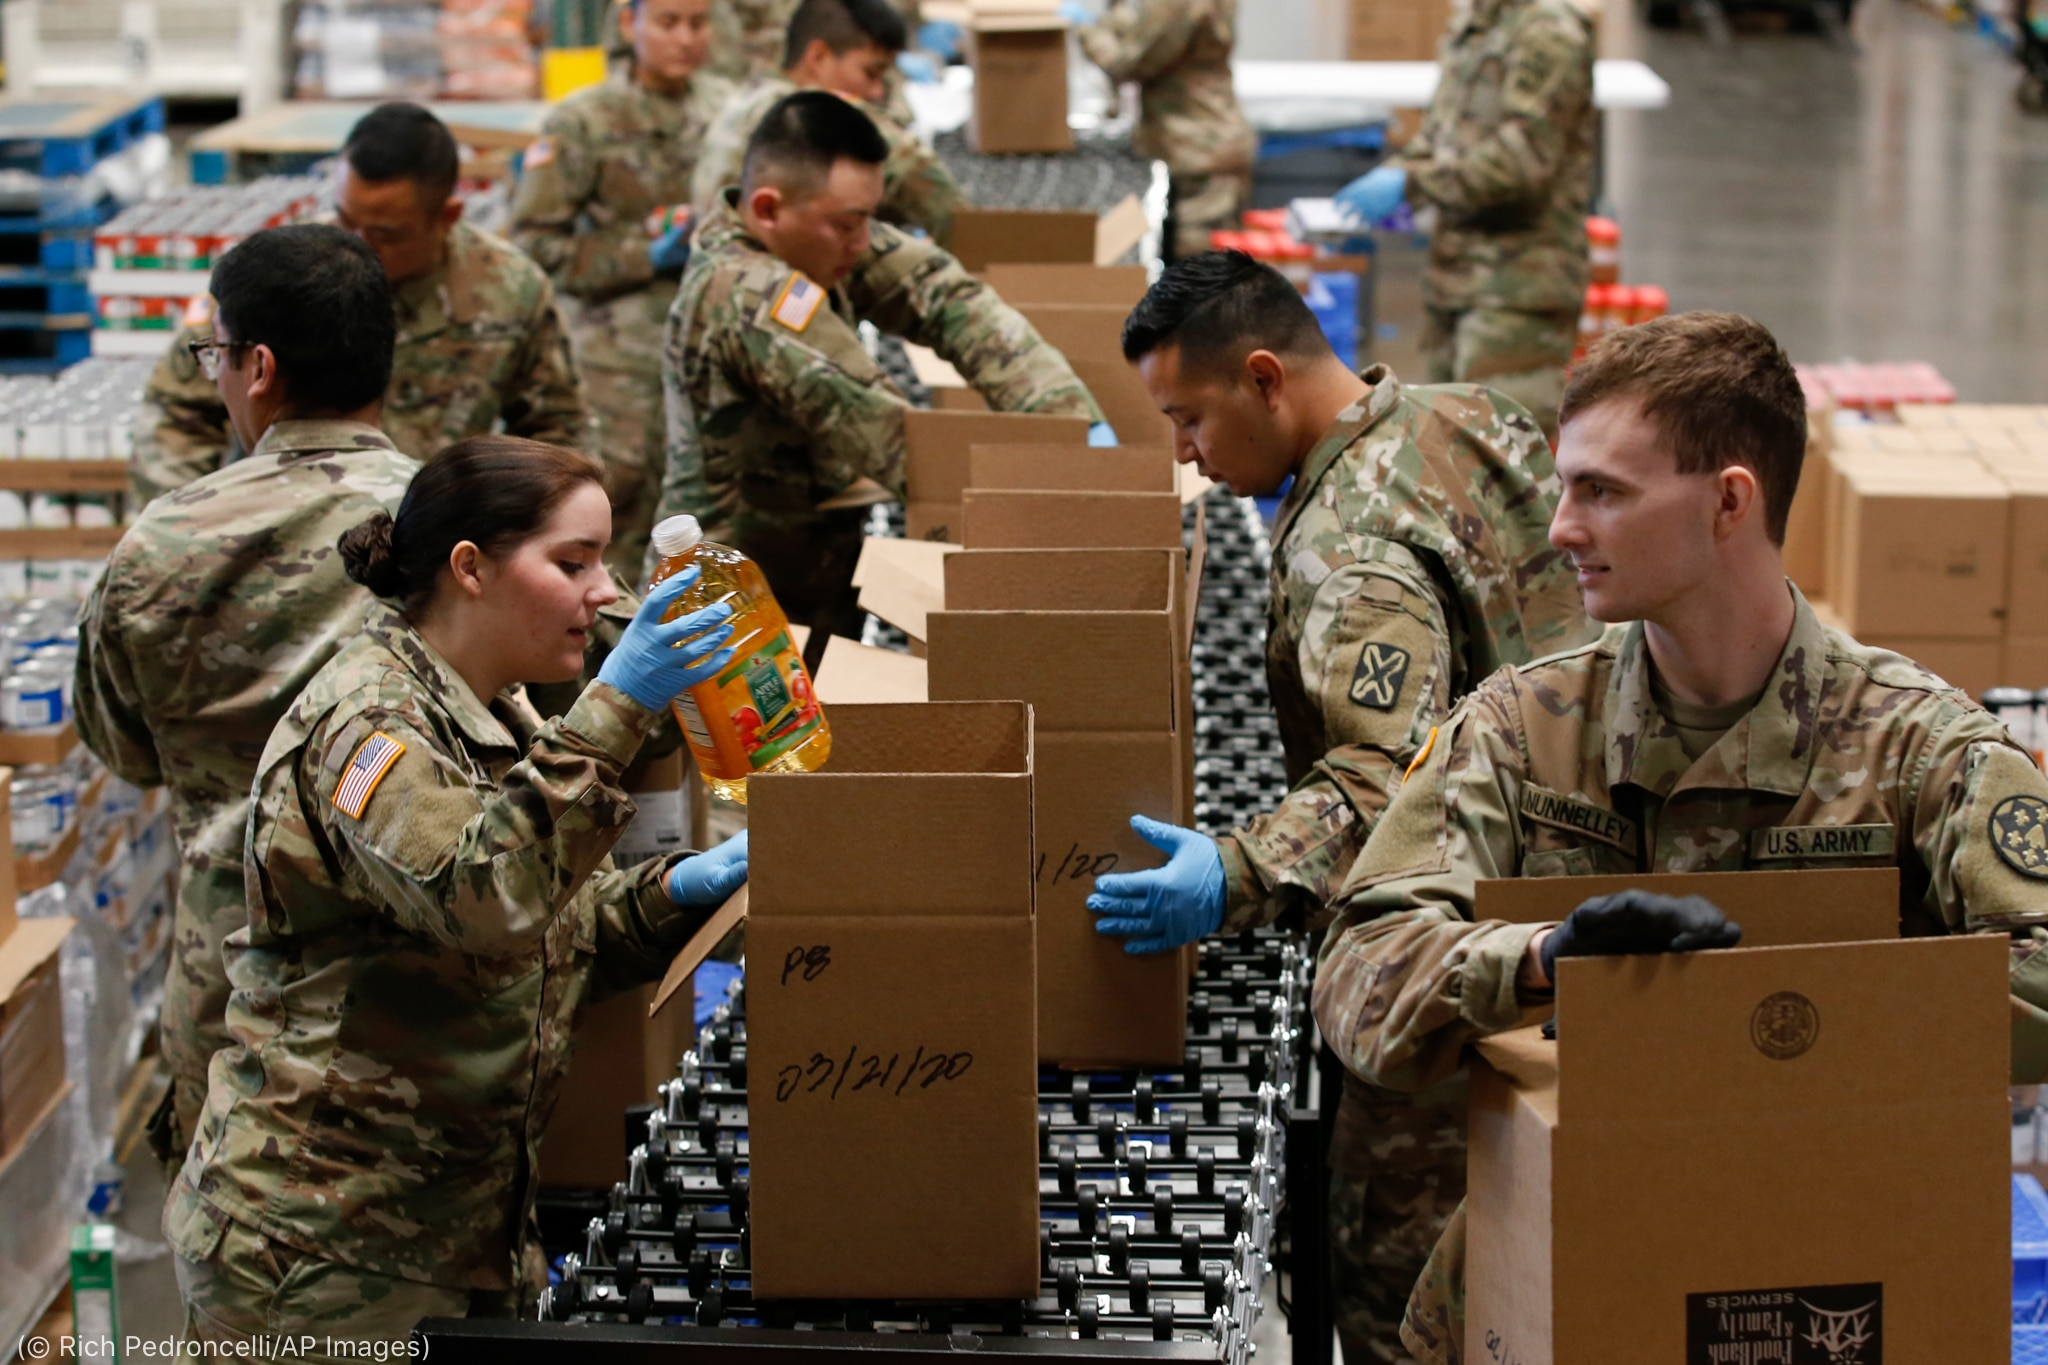 Soldiers putting food in boxes (© Rich Pedroncelli/AP Images)